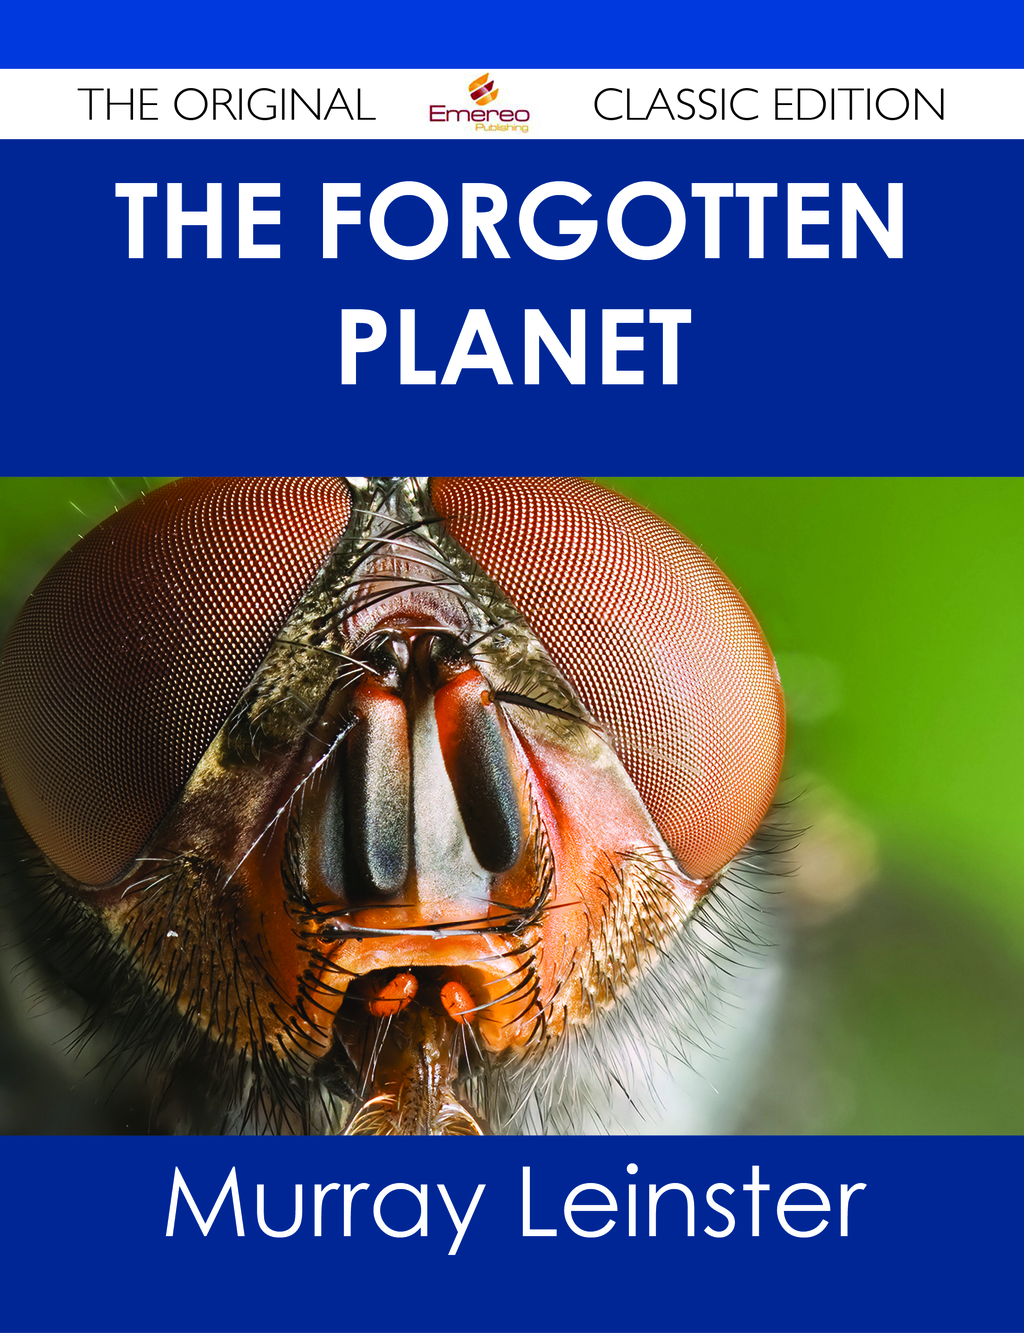 The Forgotten Planet - The Original Classic Edition By: Murray Leinster